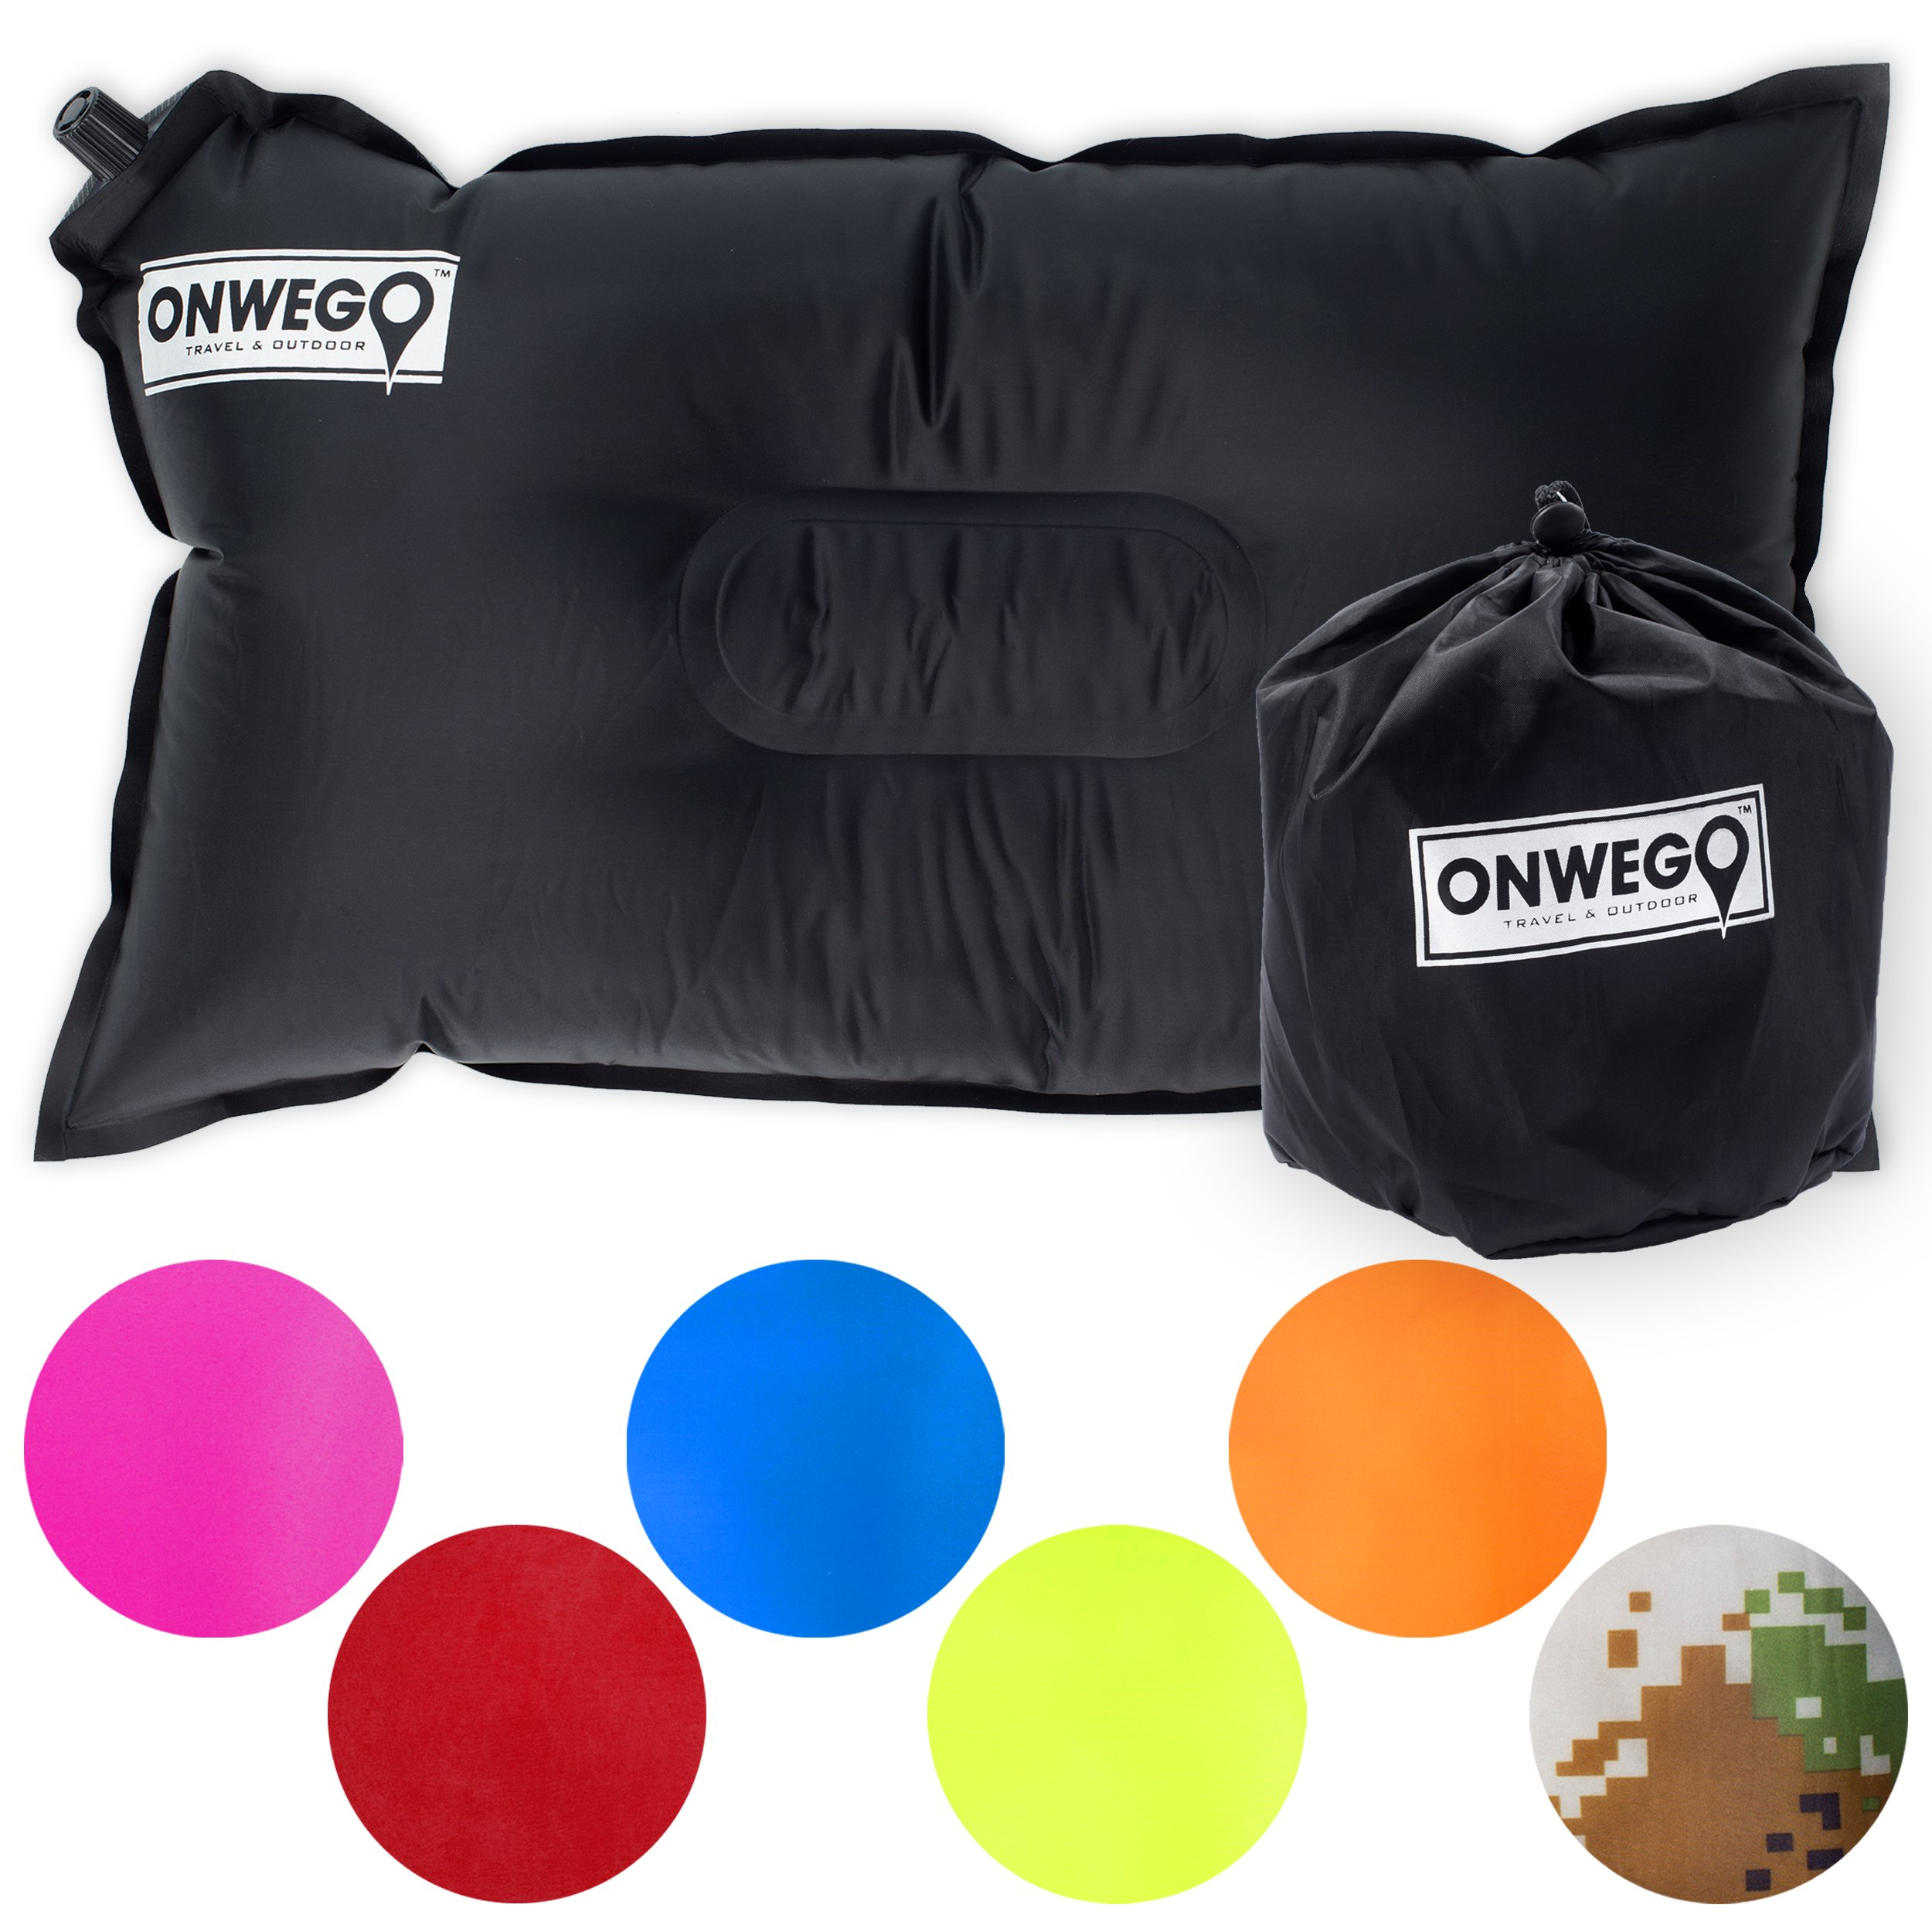 ONWEGO Inflatable Air Pillow - 20x12 inch